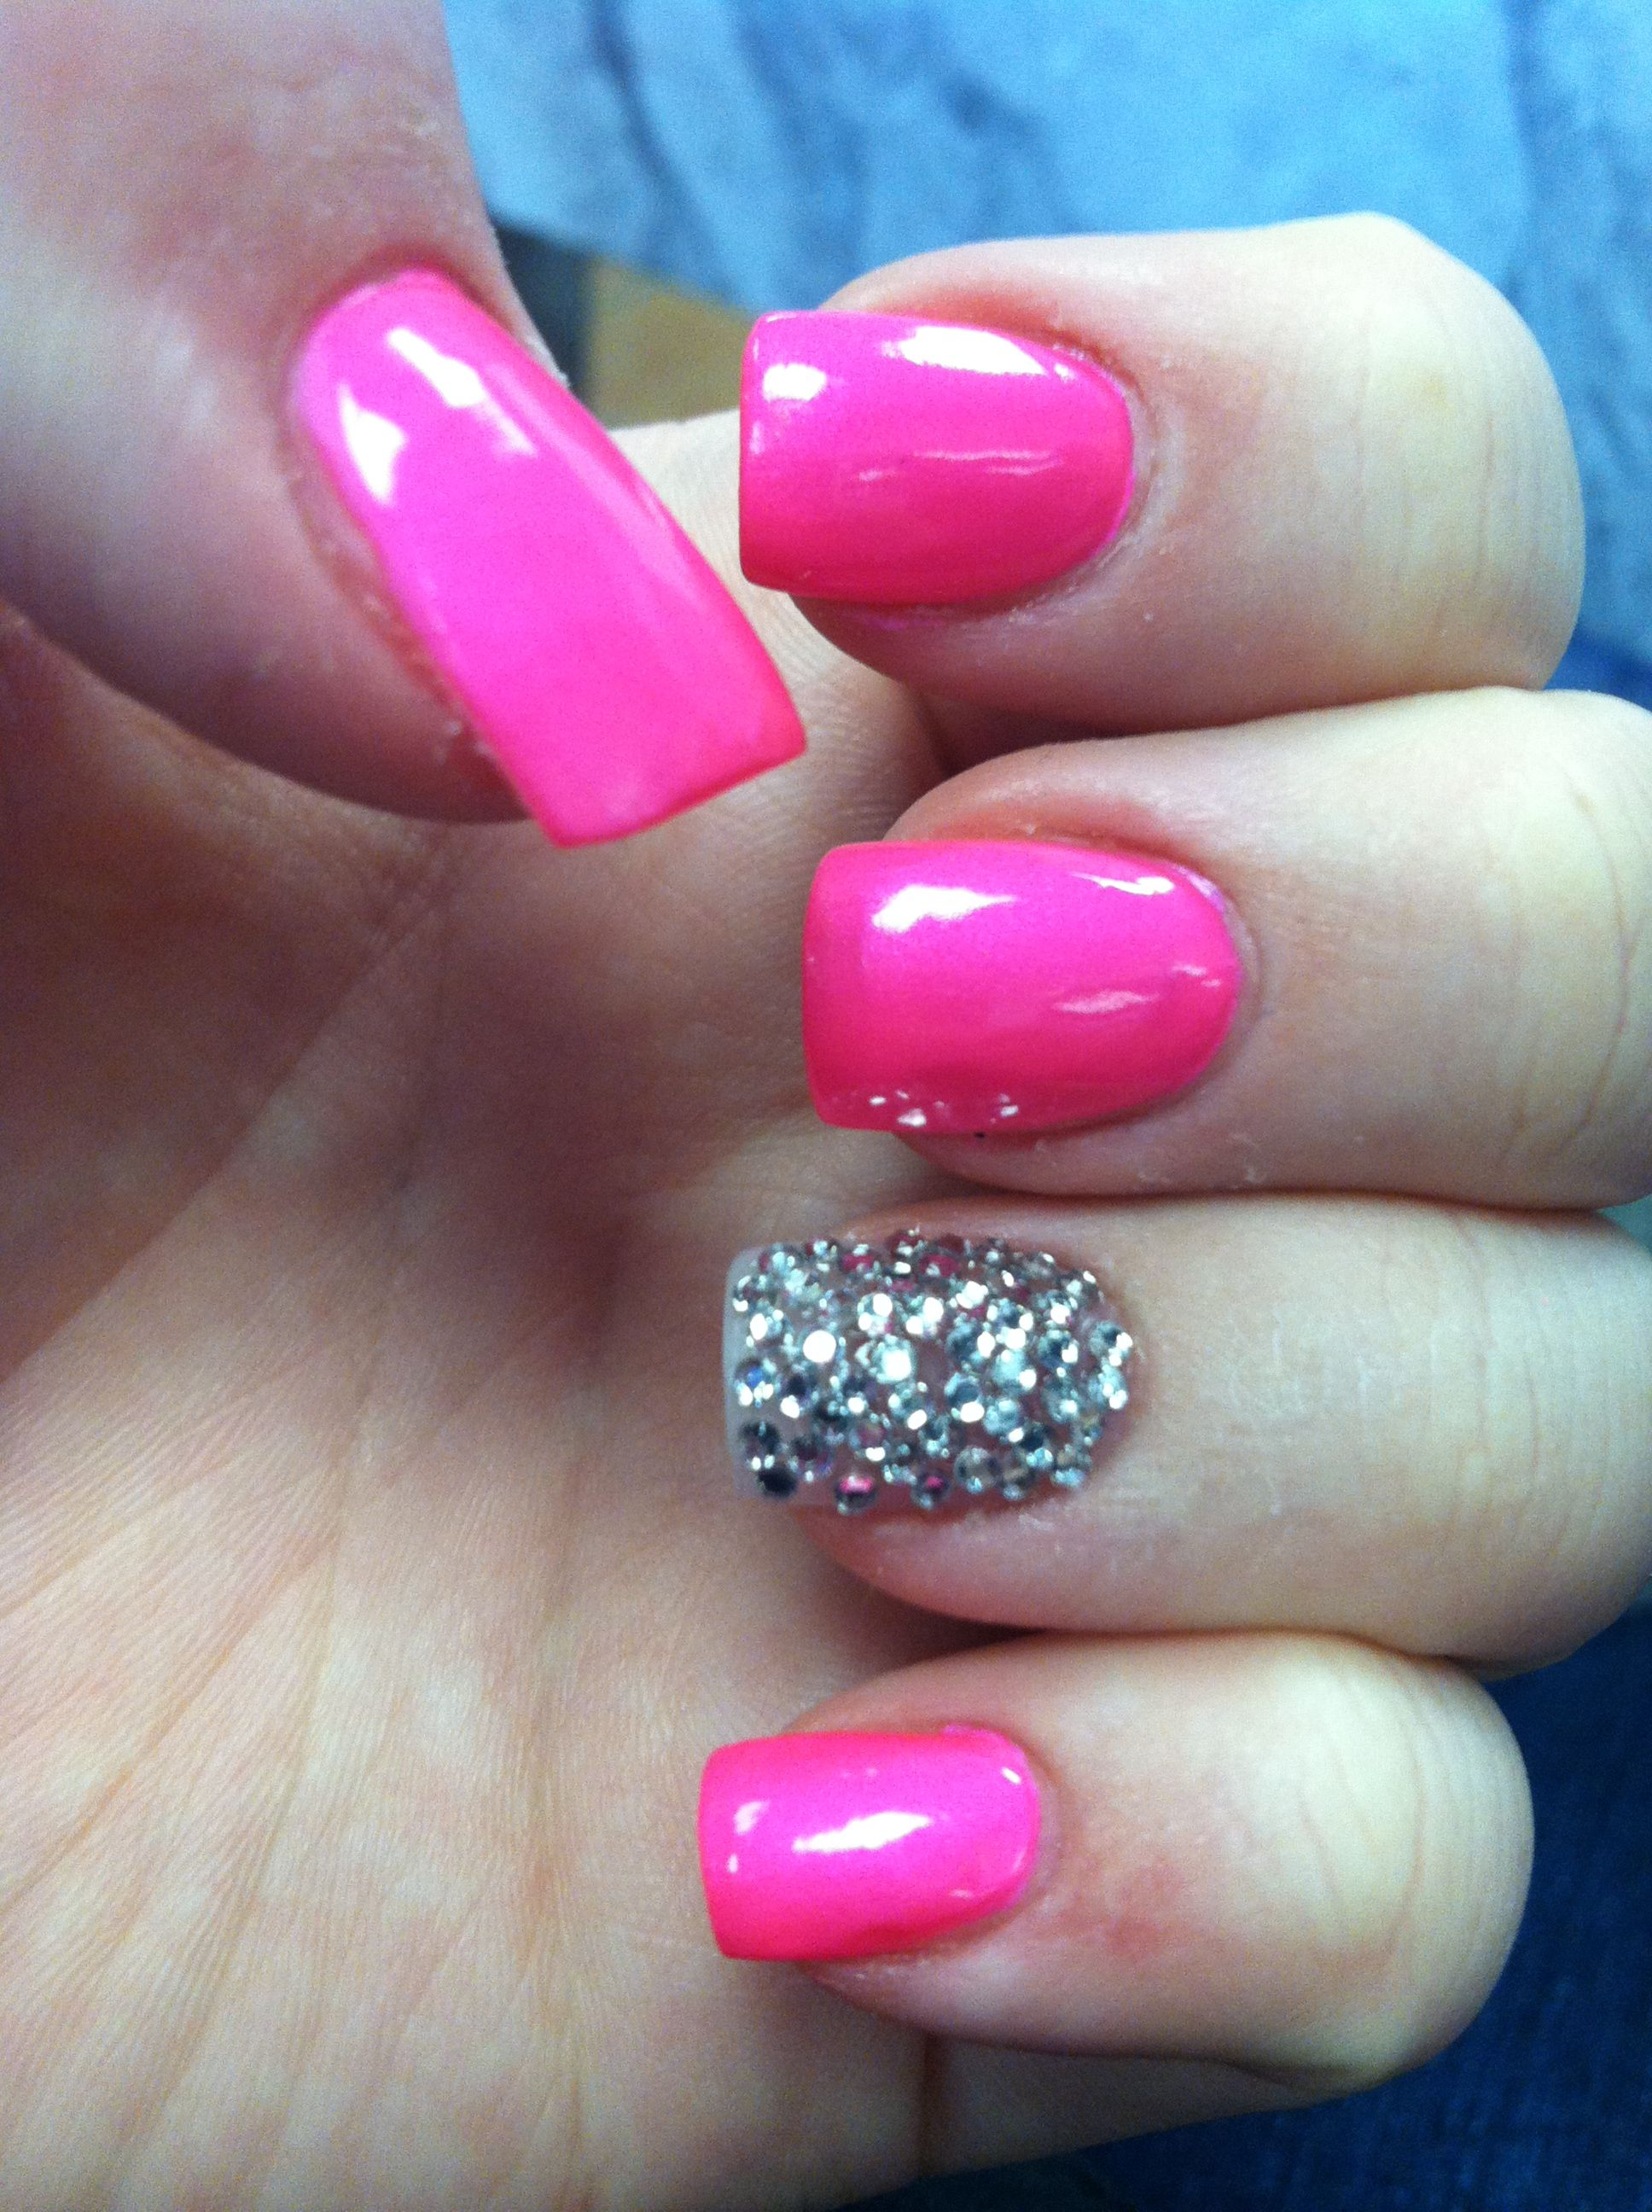 Pink nails with diamonds #nails | Hair & nails | Pinterest | Diamond ...